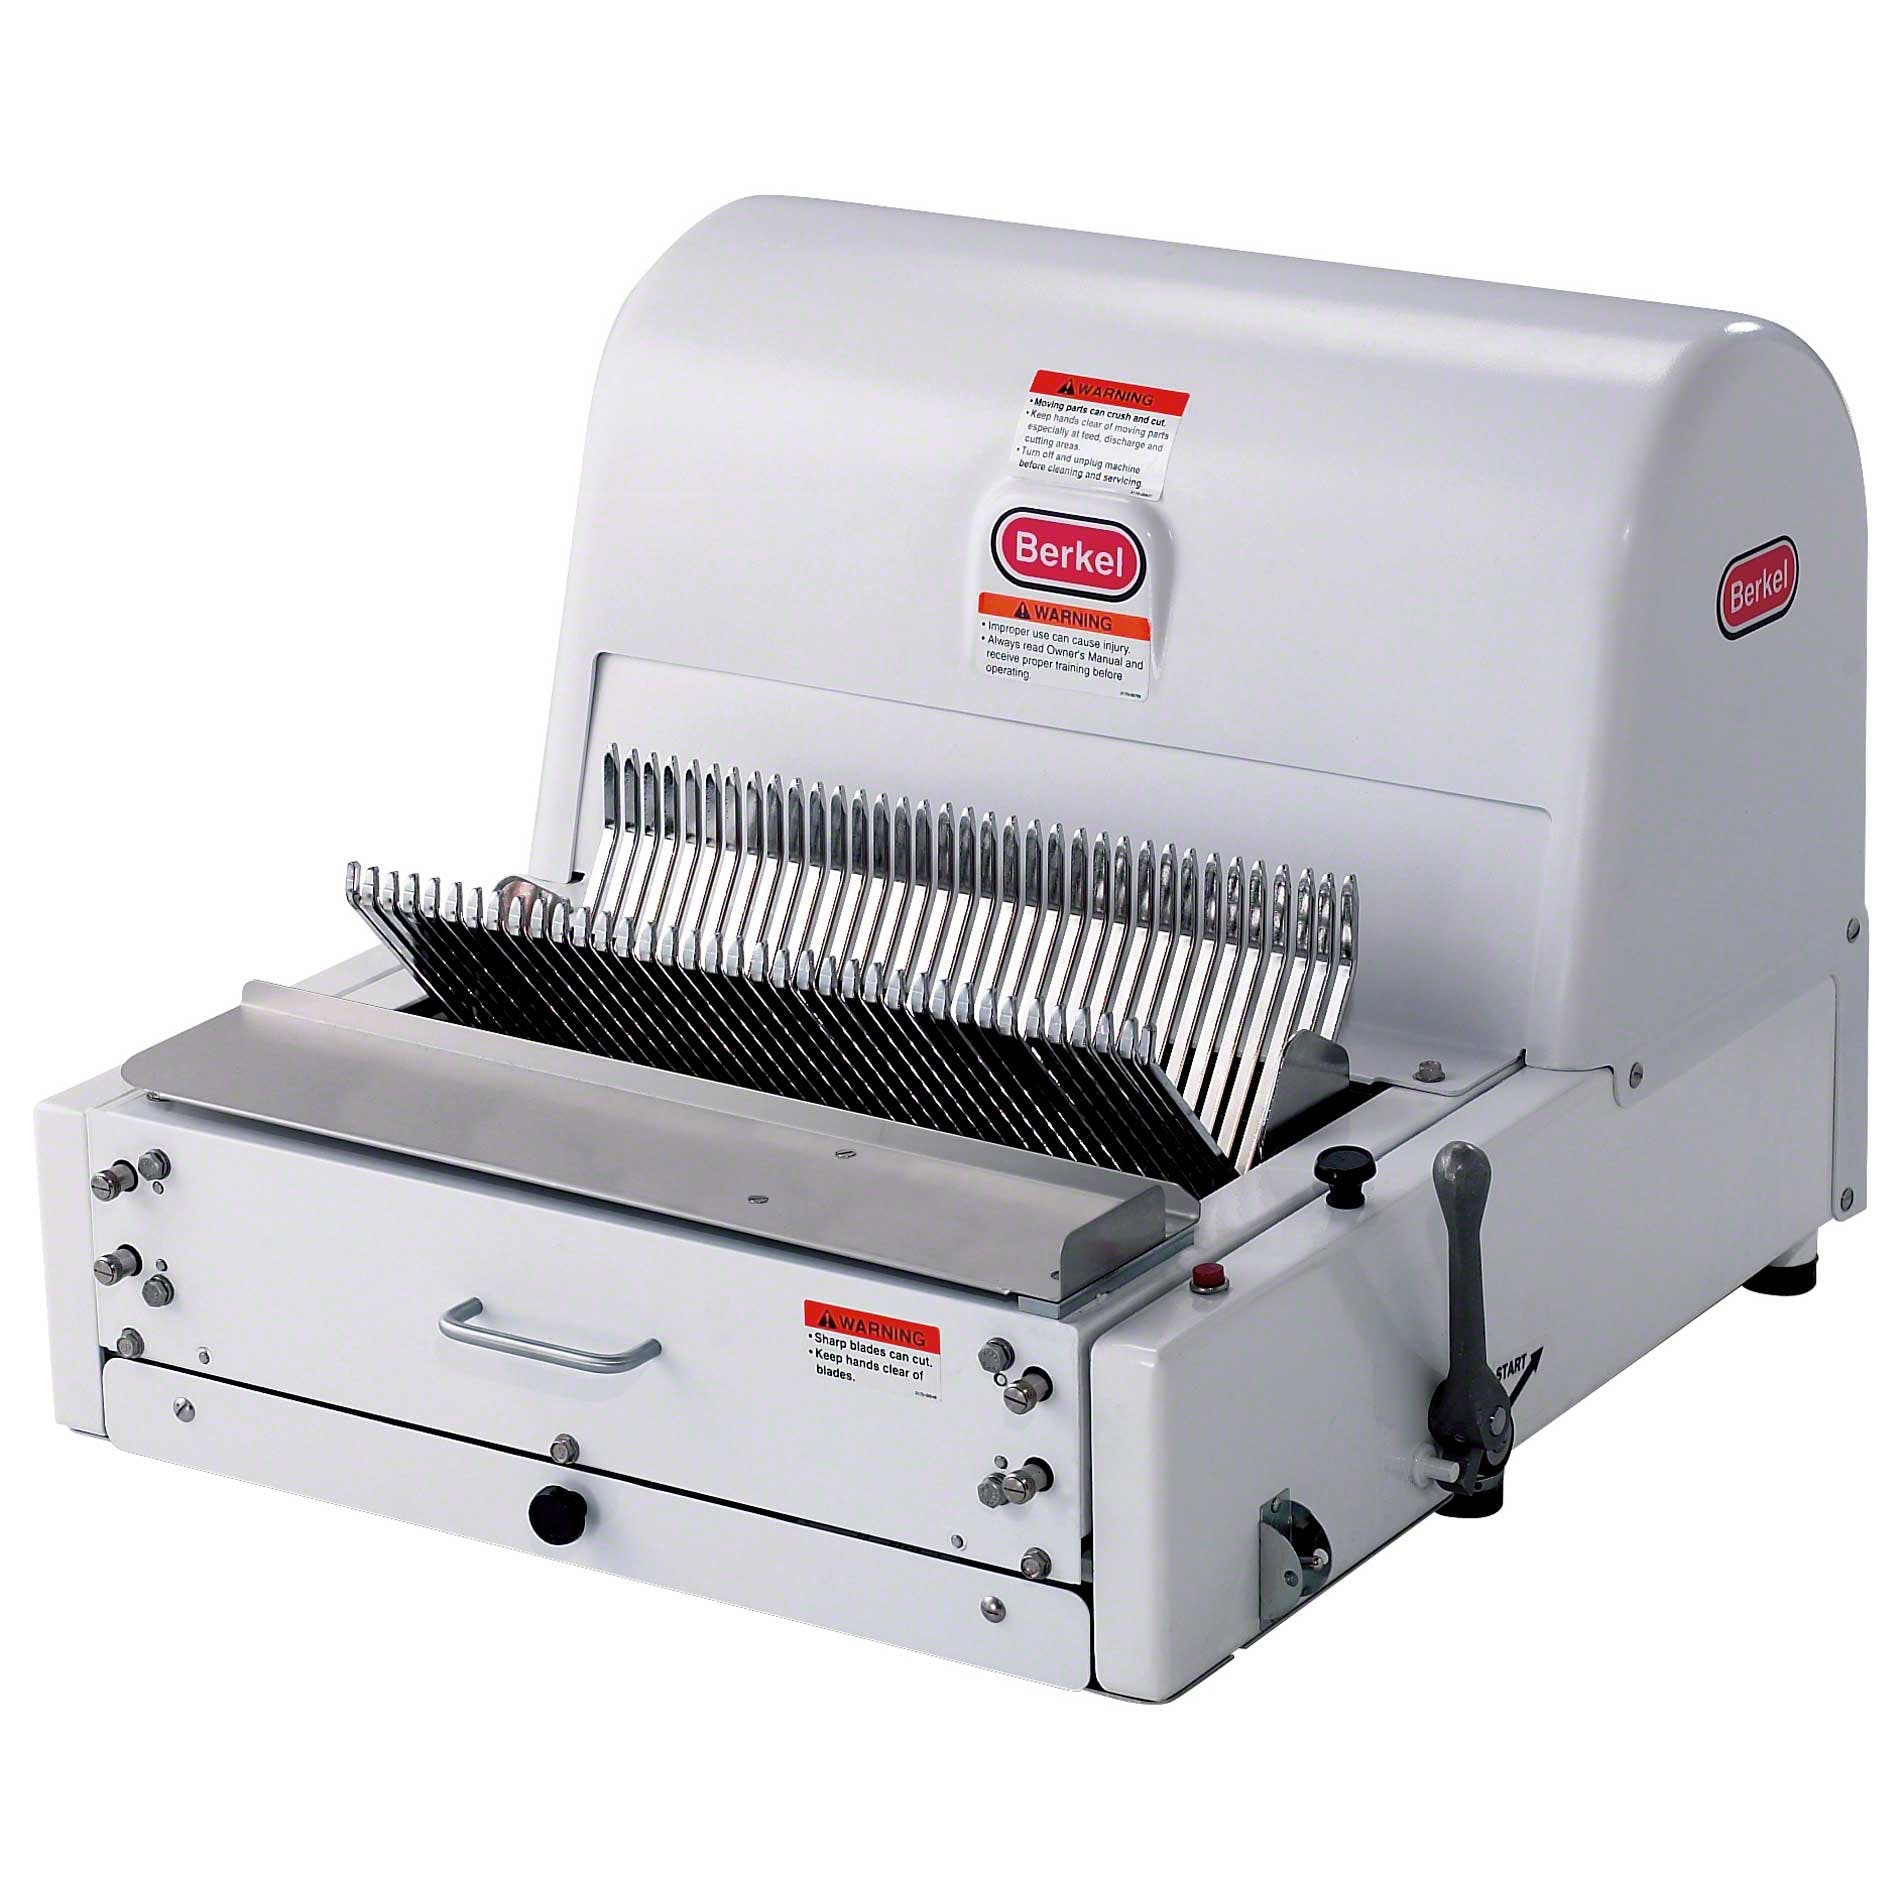 "Berkel ( MB-3/8 ) - 15-1/2"" Countertop Bread Slicer Bread slicer sold by Food Service Warehouse"